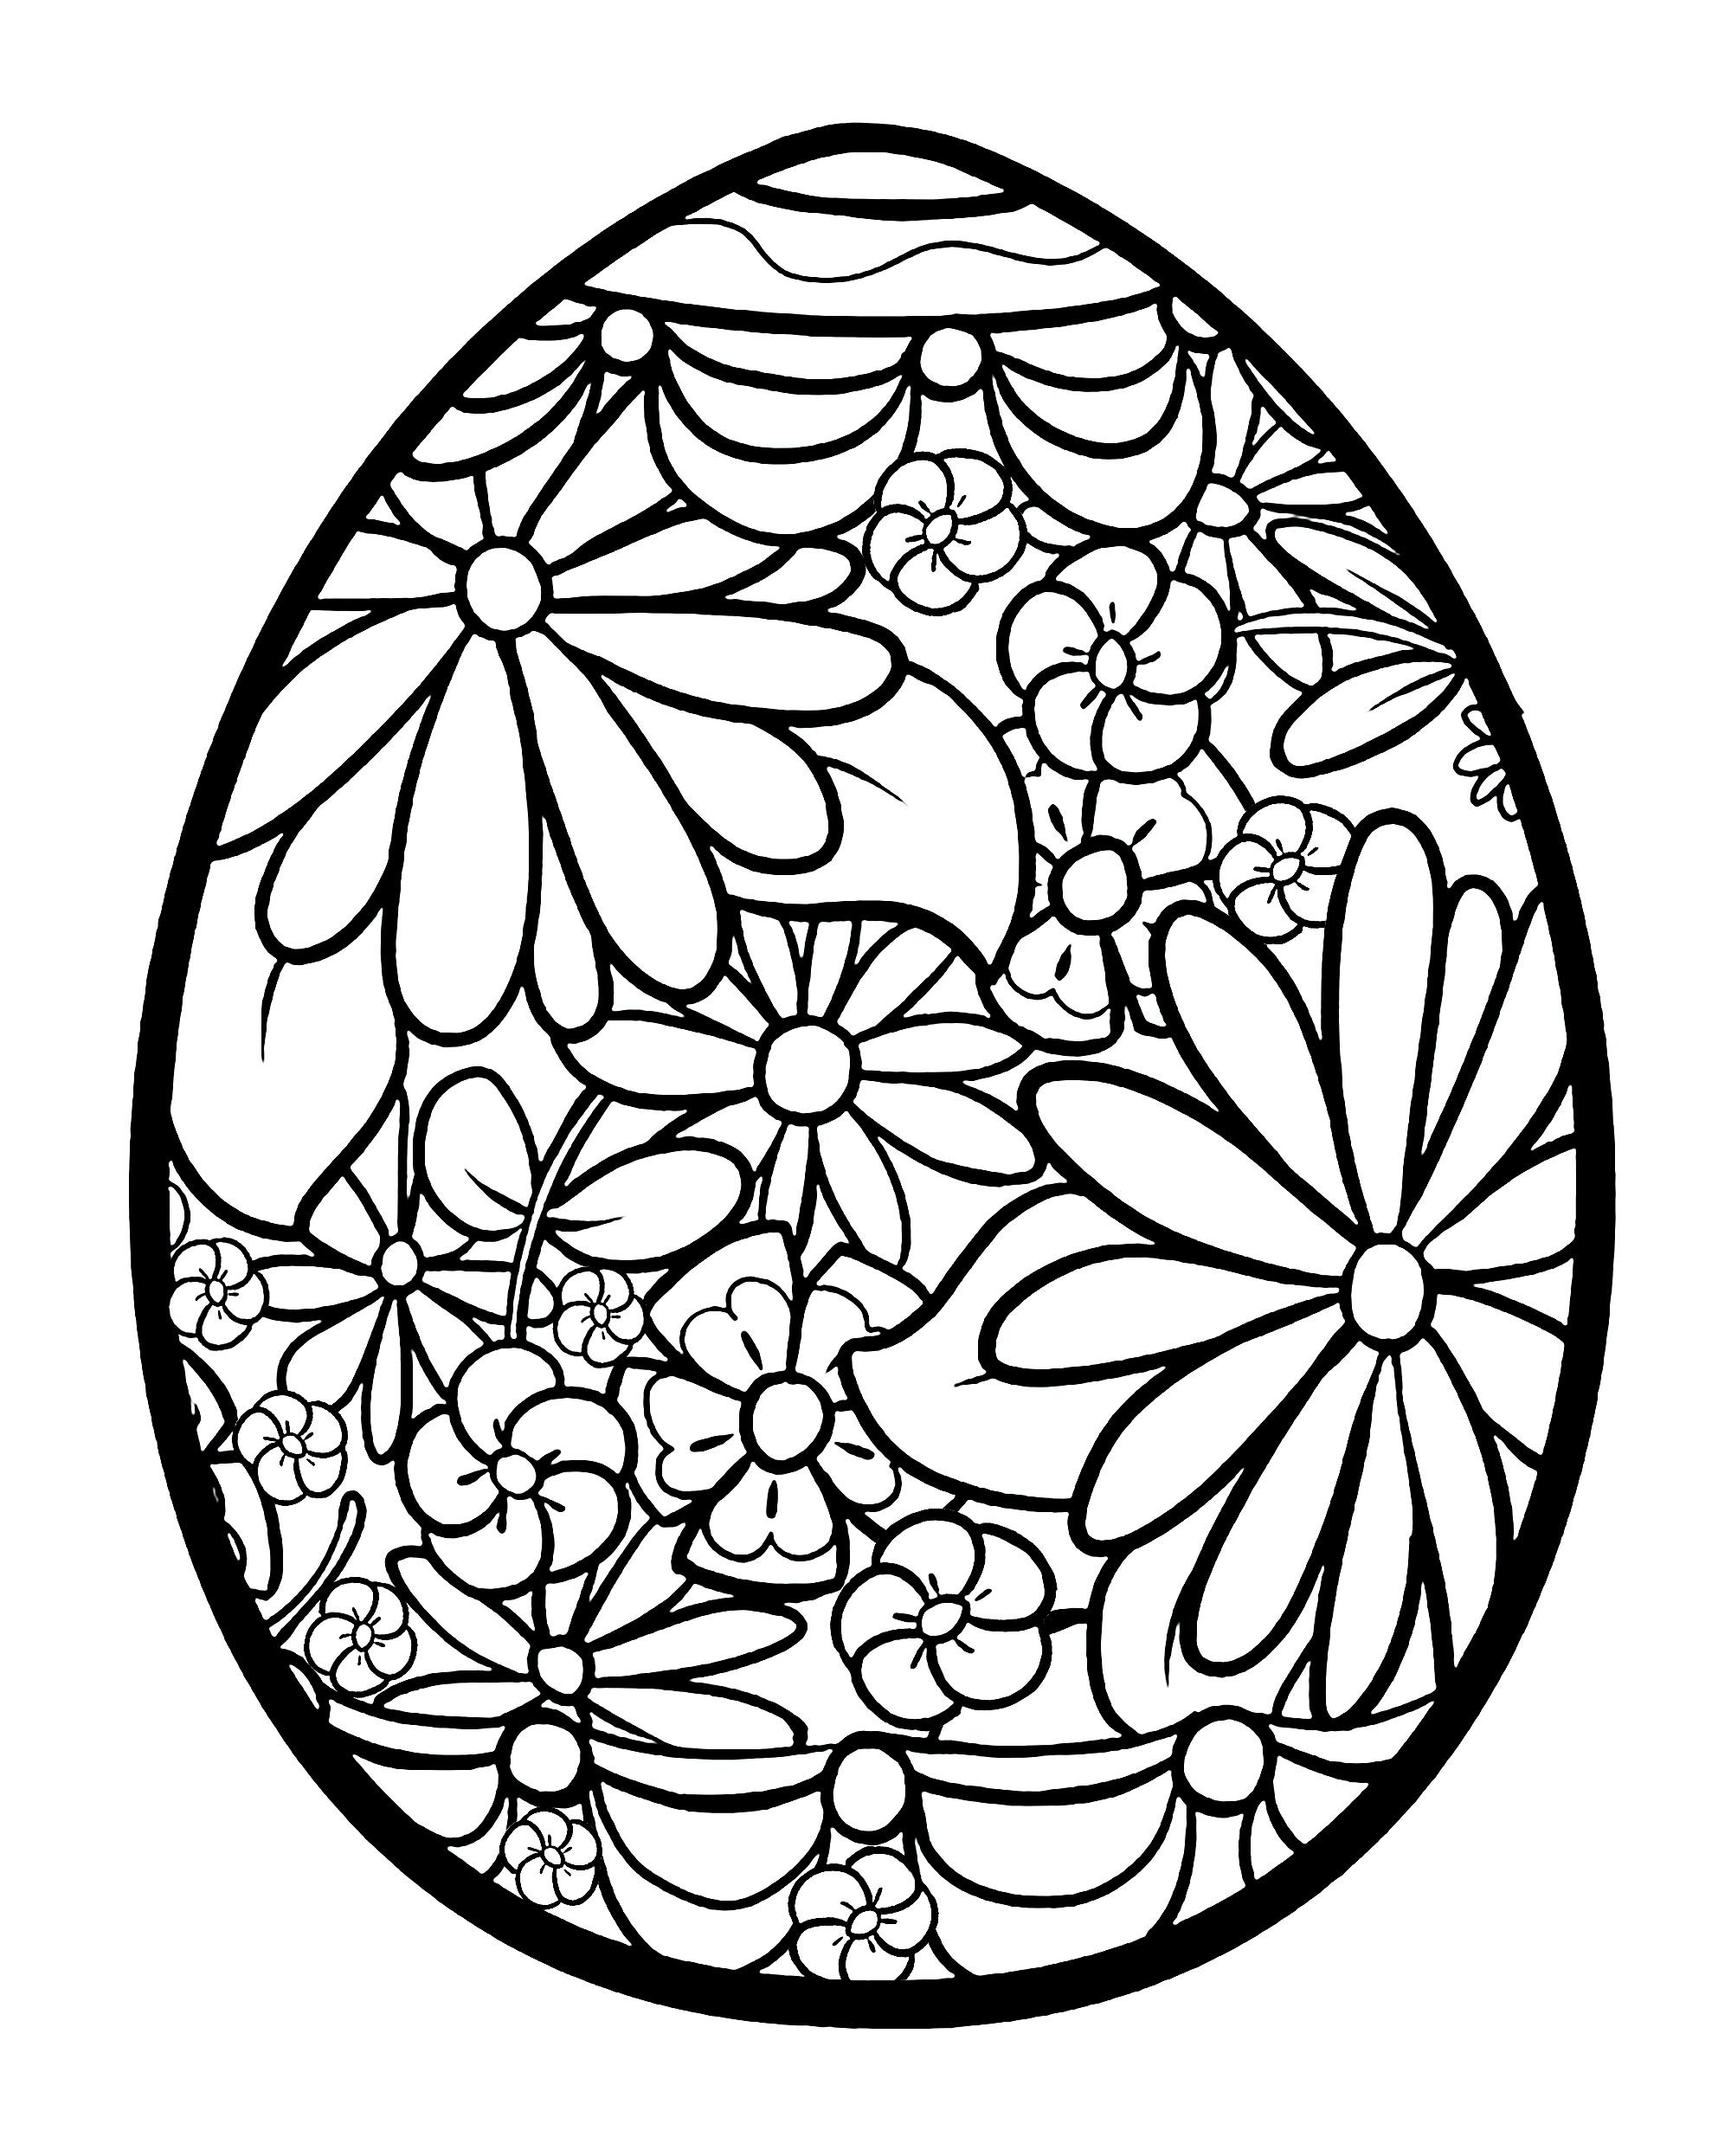 Easter Egg With Flowers From The Gallery Easter Easter Egg Printable Coloring Easter Eggs Spring Coloring Pages